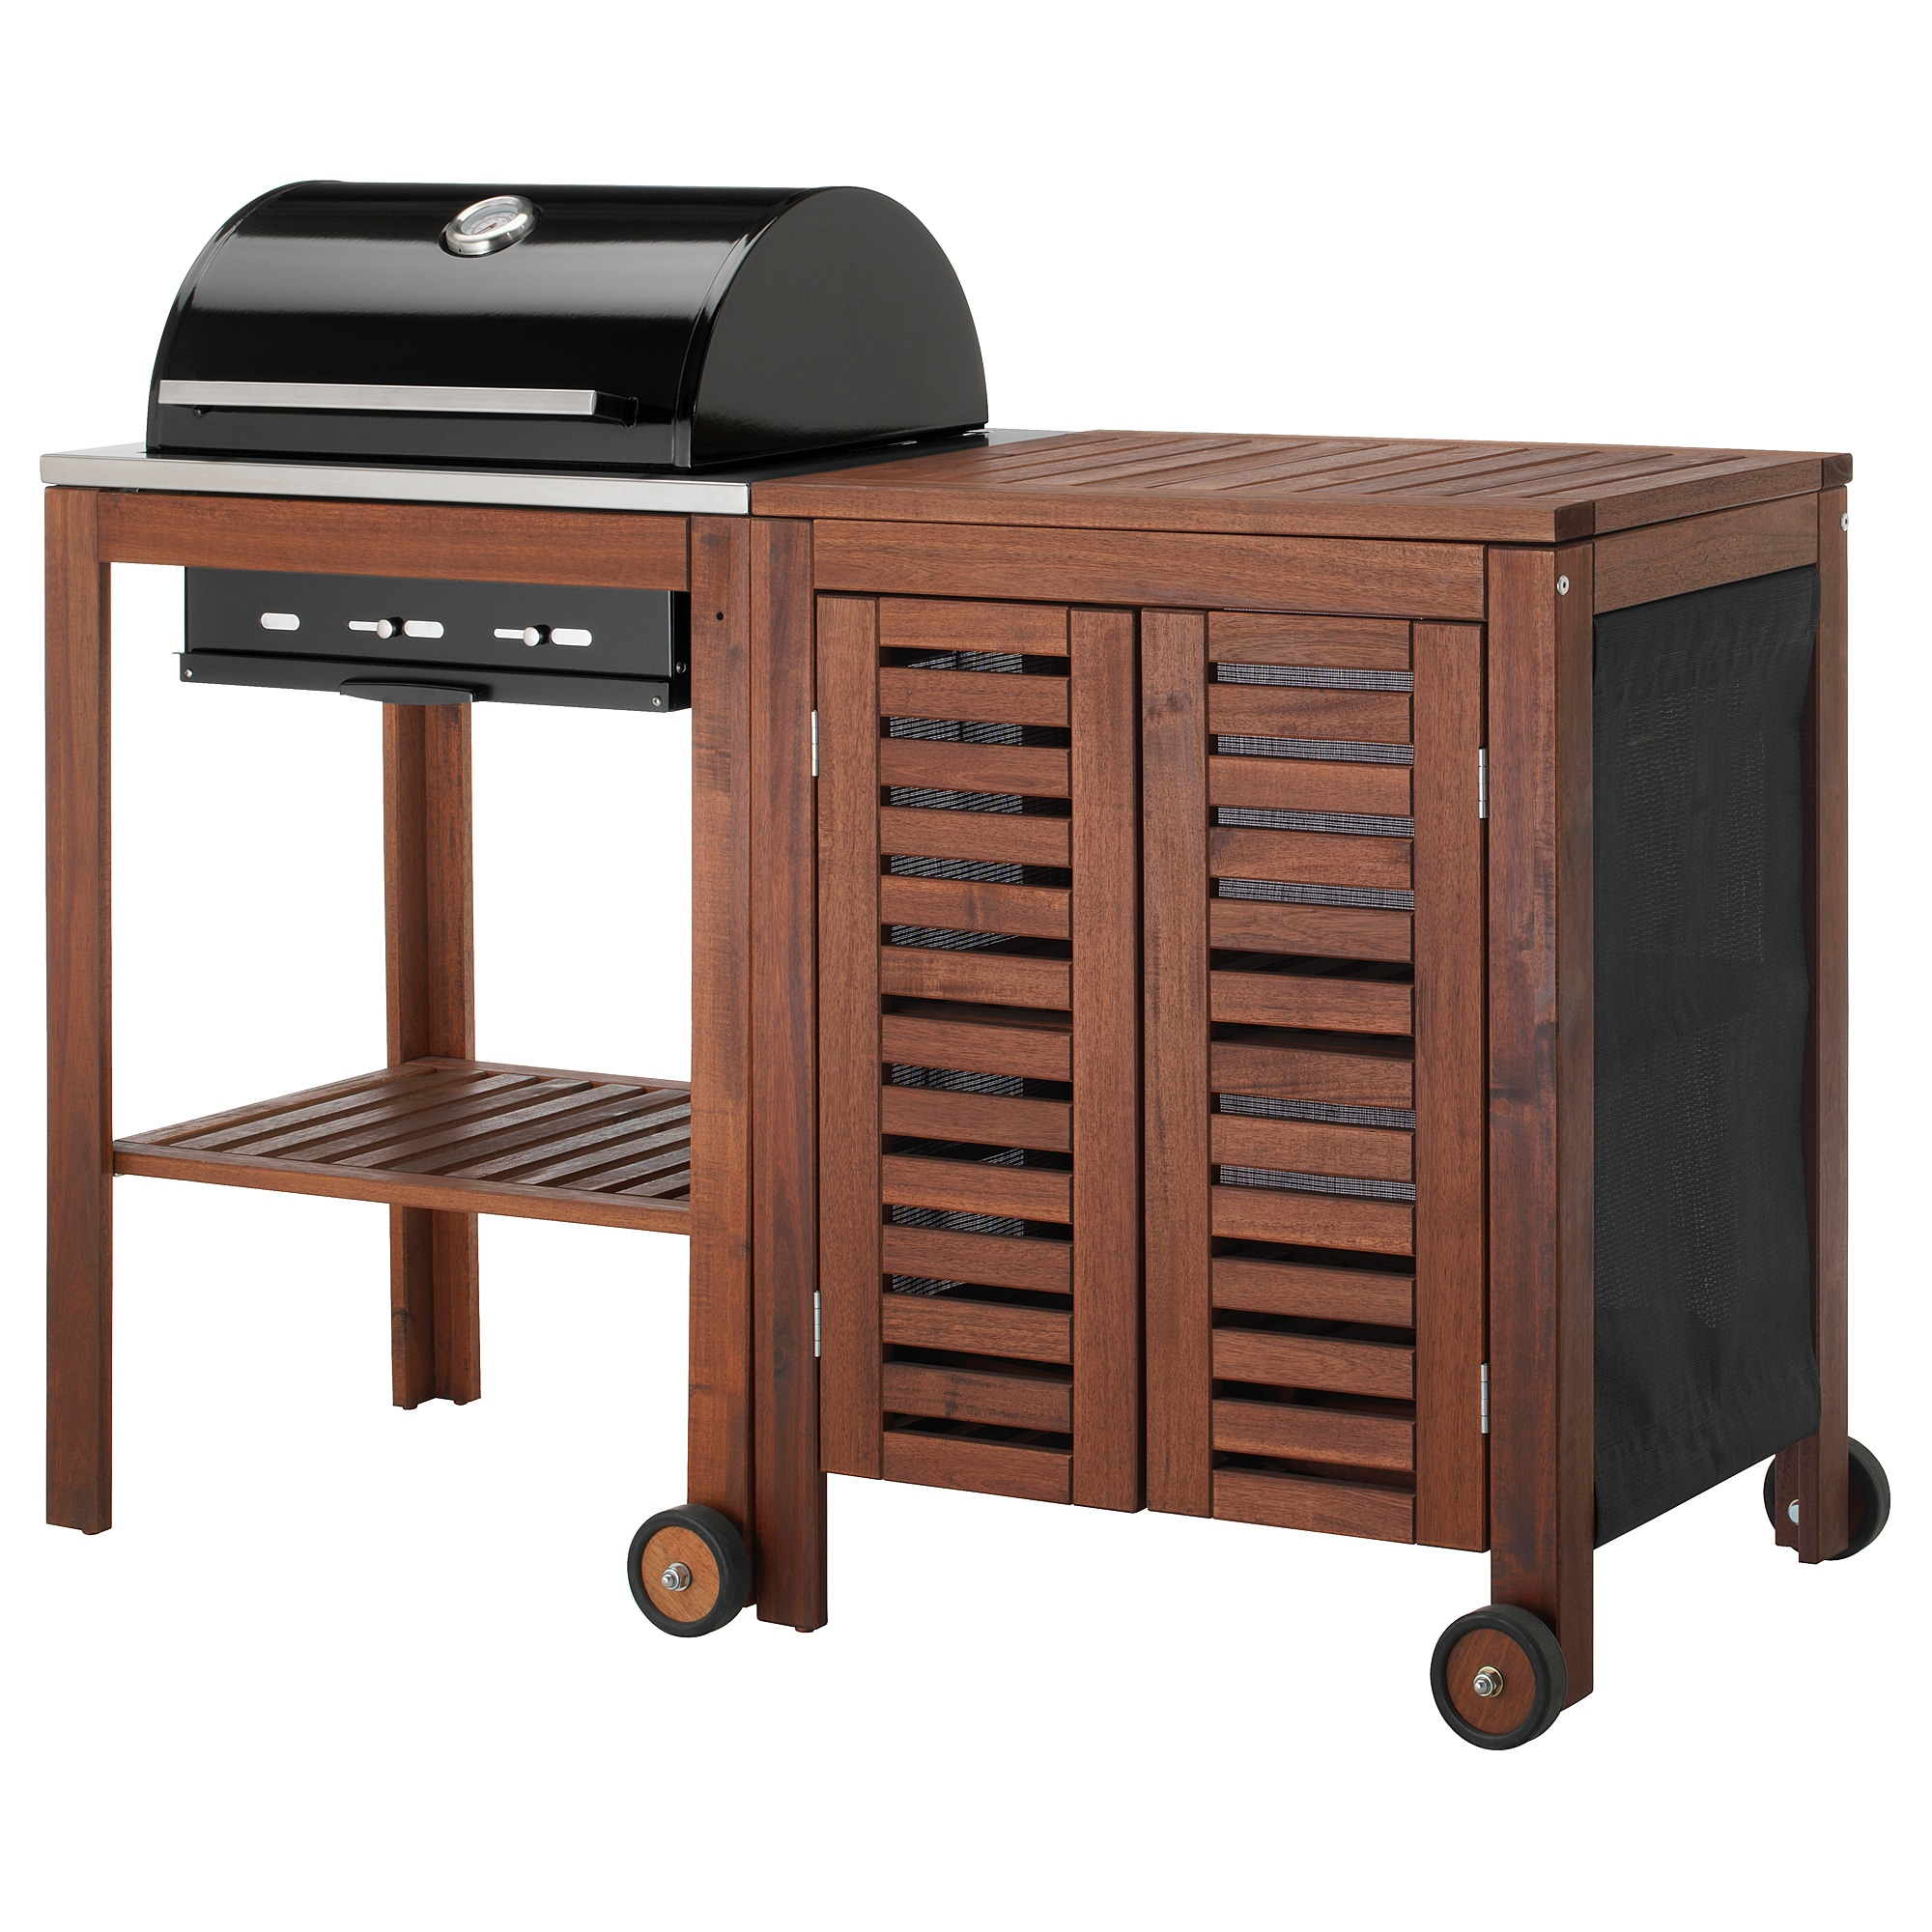 Bon ÄPPLARÖ / KLASEN Charcoal Grill With Cabinet   Brown Stained/stainless Steel  Color   IKEA